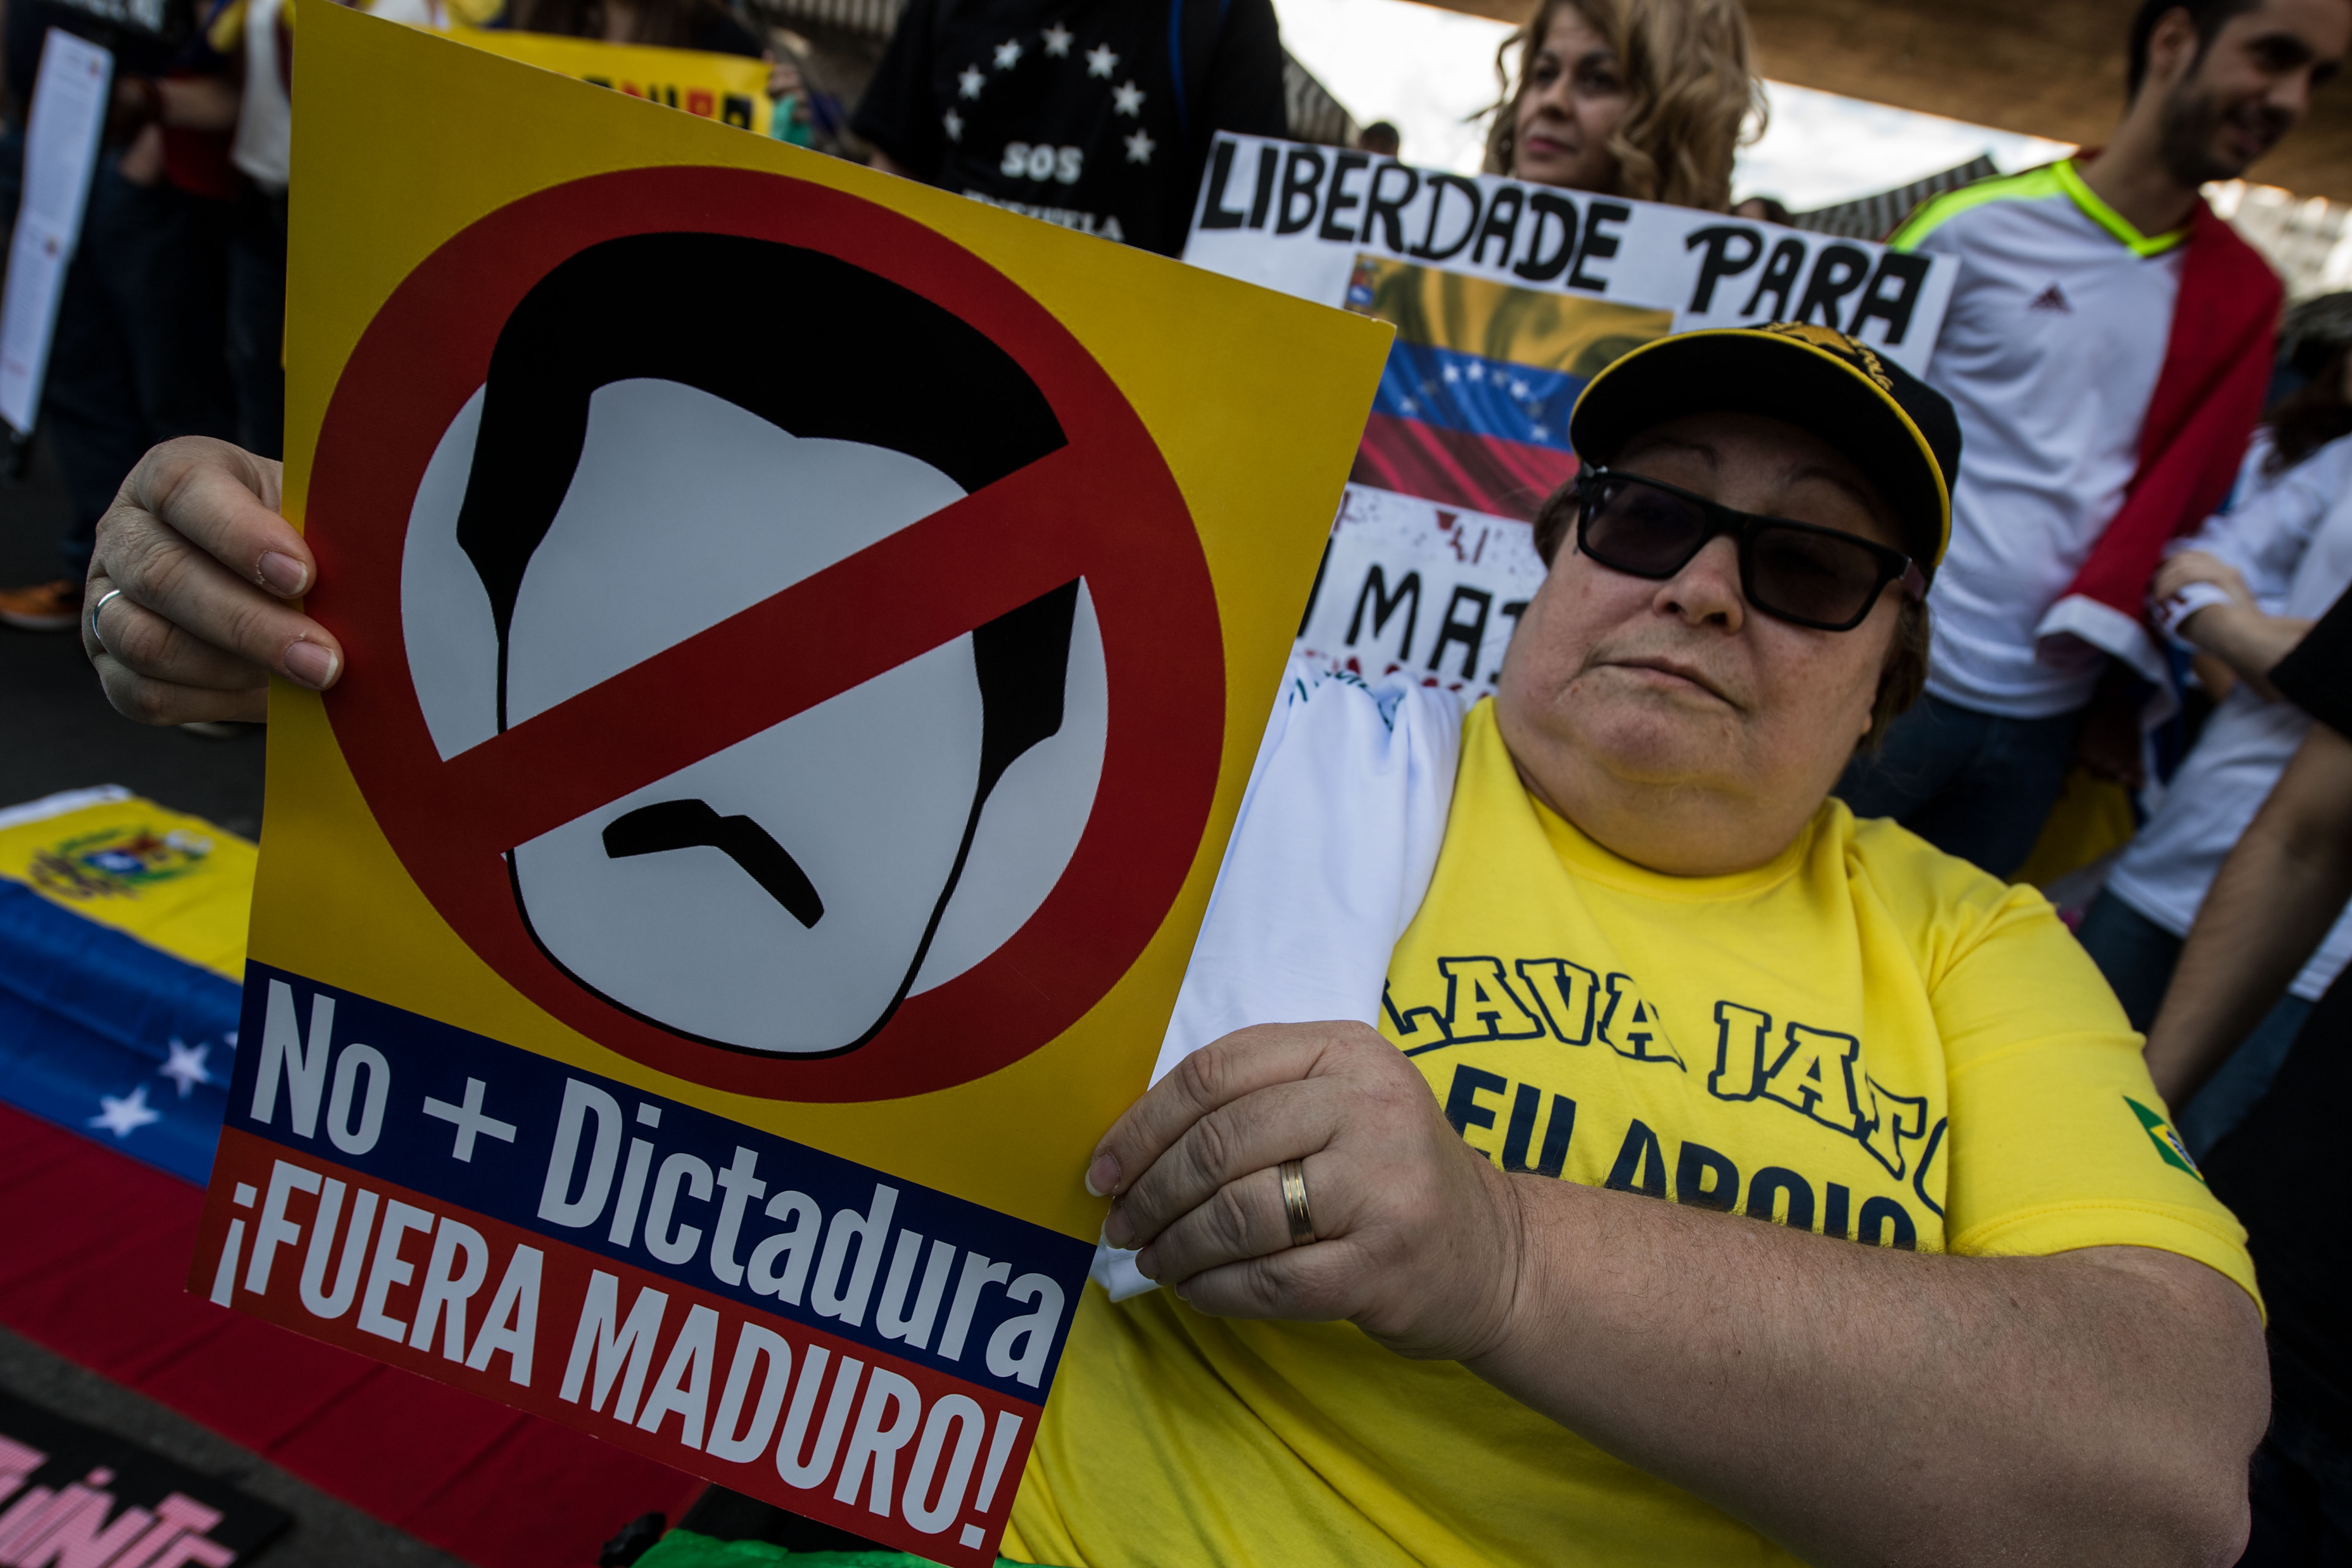 Venezuelan people living in Brazil protest against the election of the Constituent Assembly in Venezuela, at Paulista Avenue in Sao Paulo, Brazil, on July 30, 2017. (NELSON ALMEIDA/AFP/Getty Images)